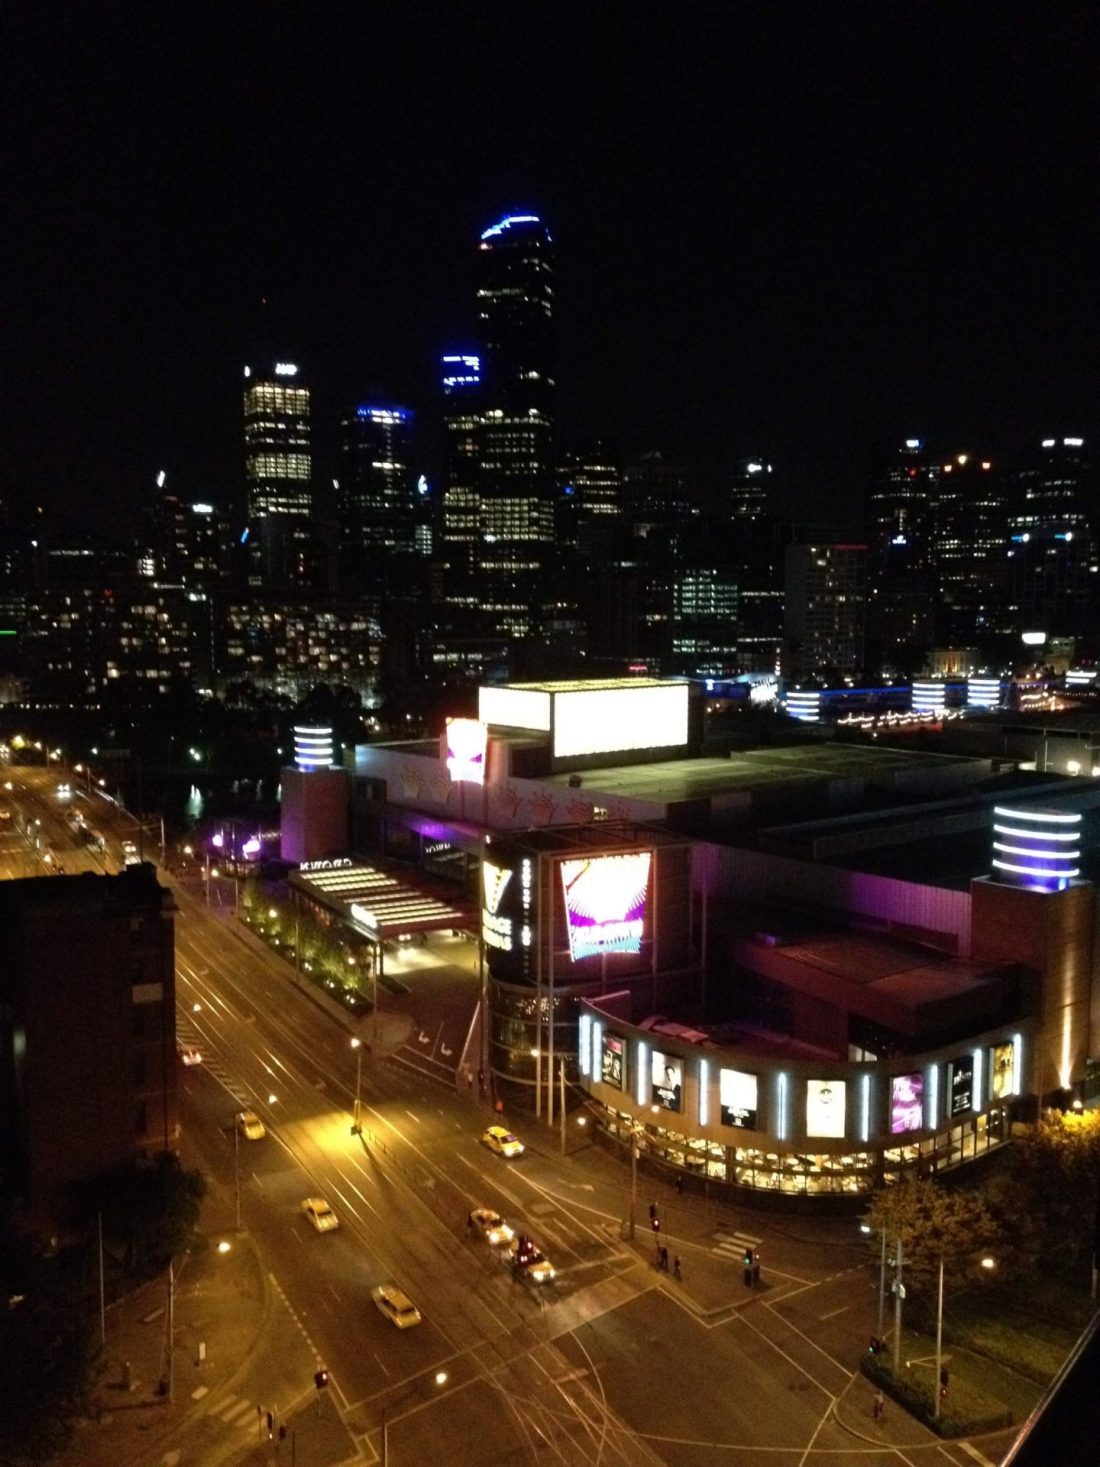 Melbourne and the Crown Casino by night